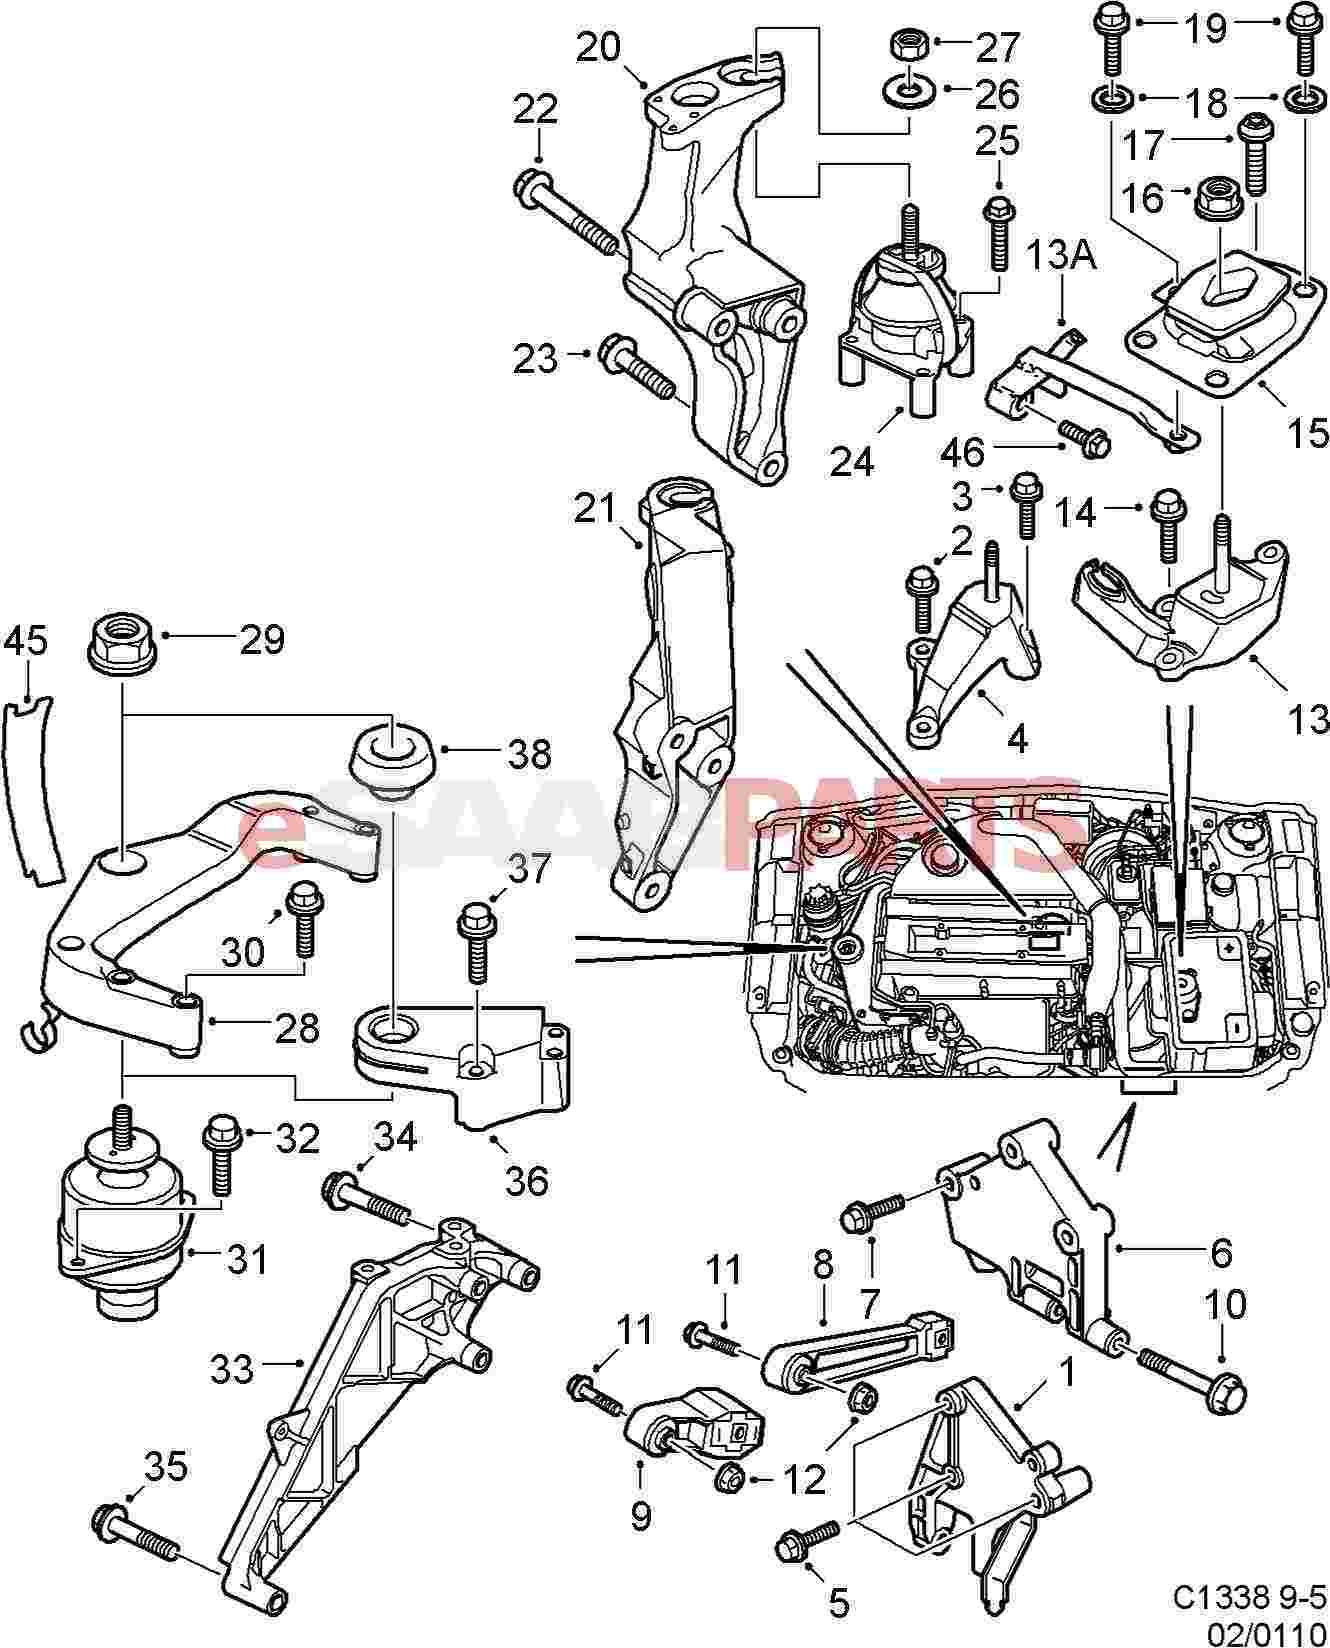 12770367 saab engine mount lower passenger rh side 99 09 9 5 rh esaabparts com Saab 9 3 Parts Diagram Saab 900 Engine Diagram